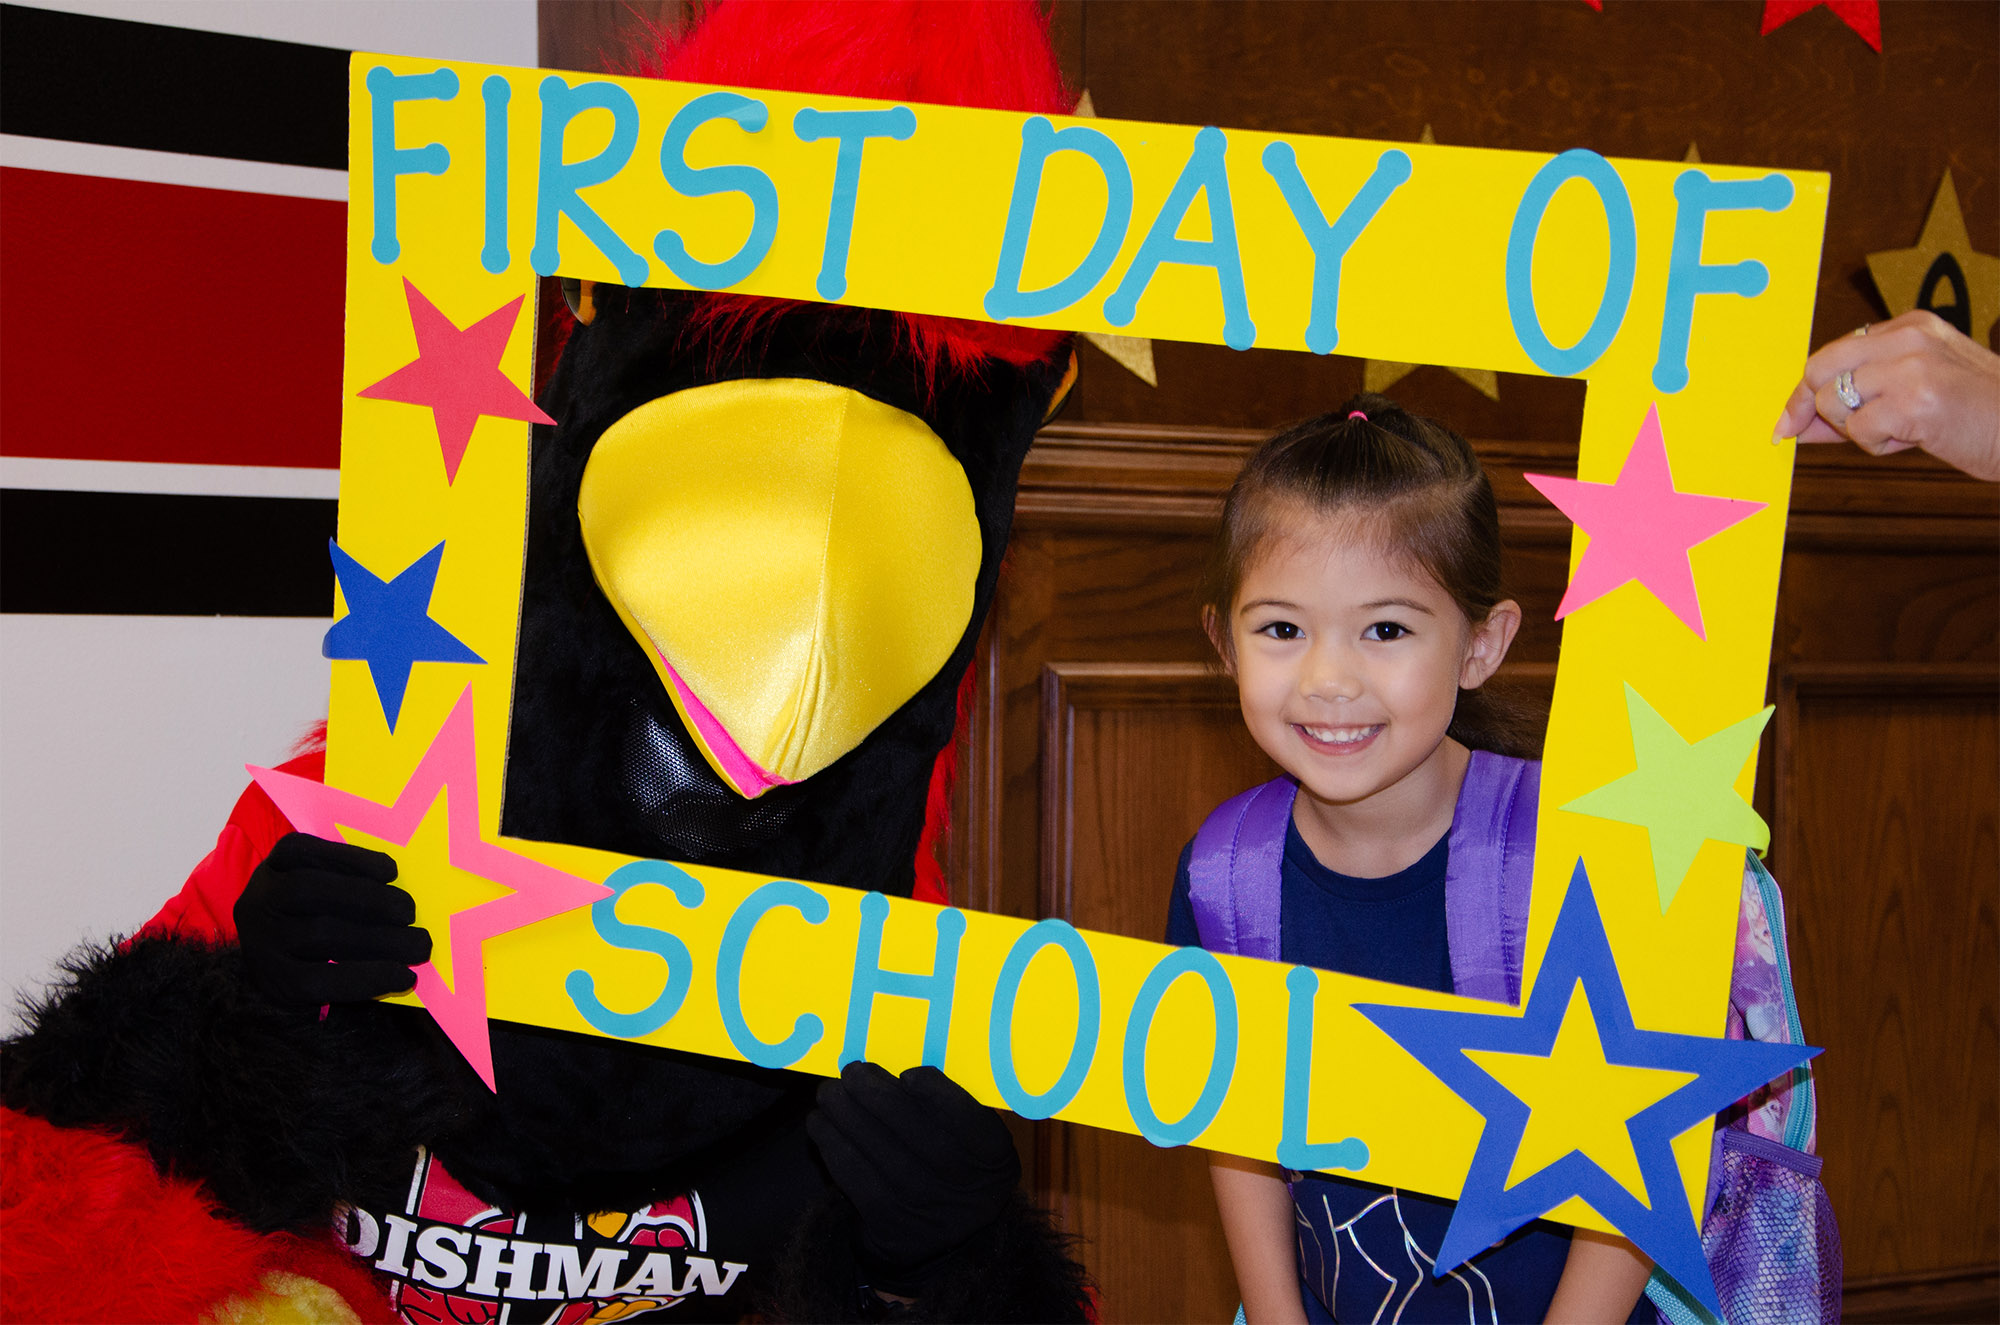 HCISD's first day of 2018-2019 school year